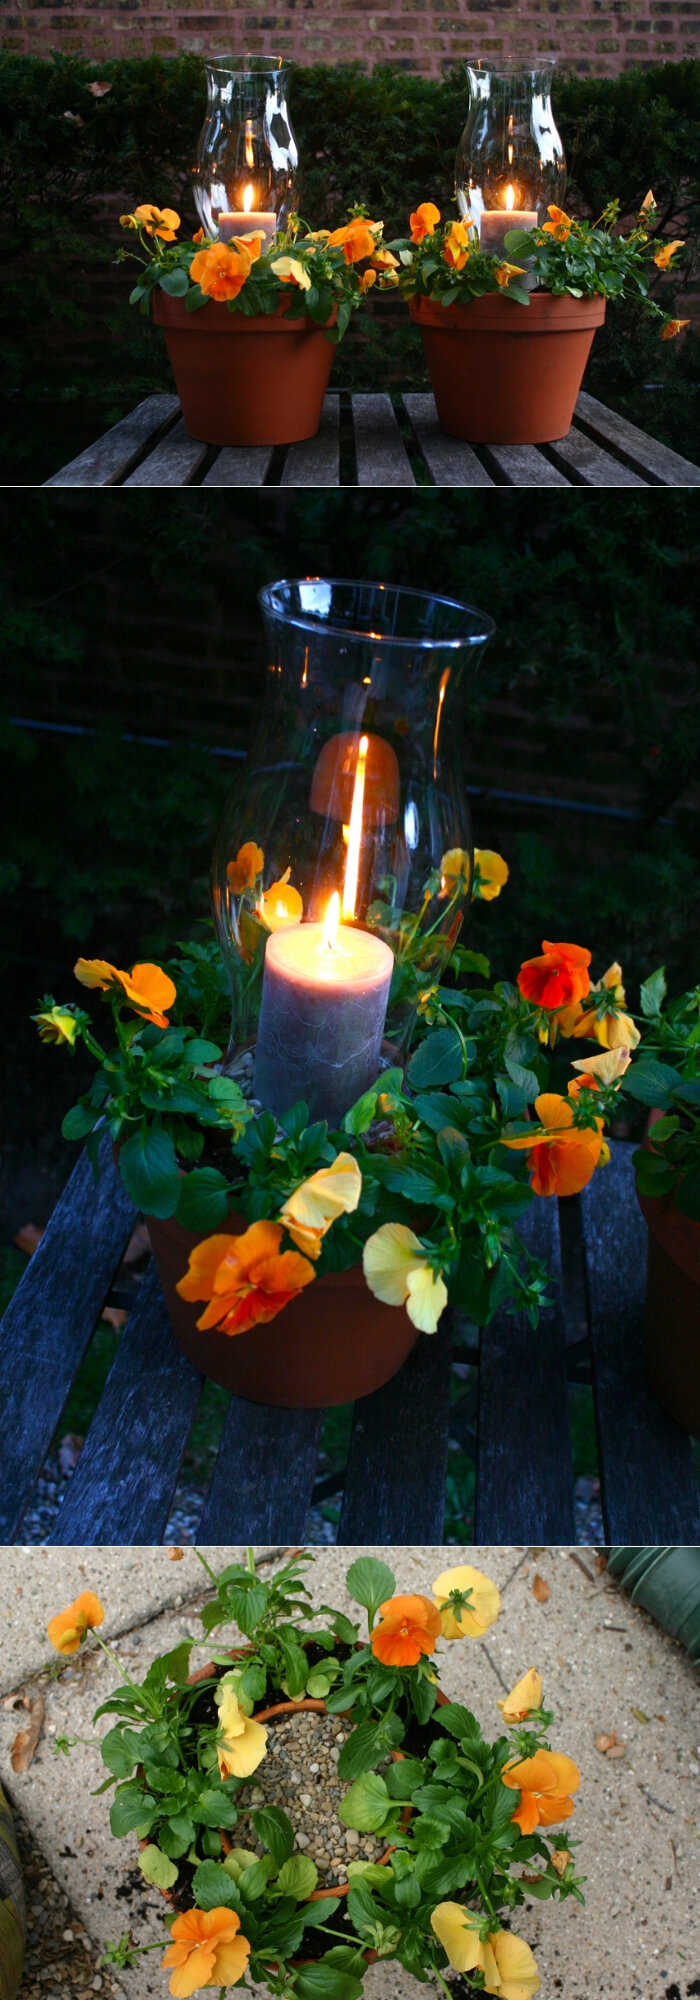 Potted Candle Planters   Trending & Vintage Porch Lighting Ideas & Designs   FarmFoodFamily.com